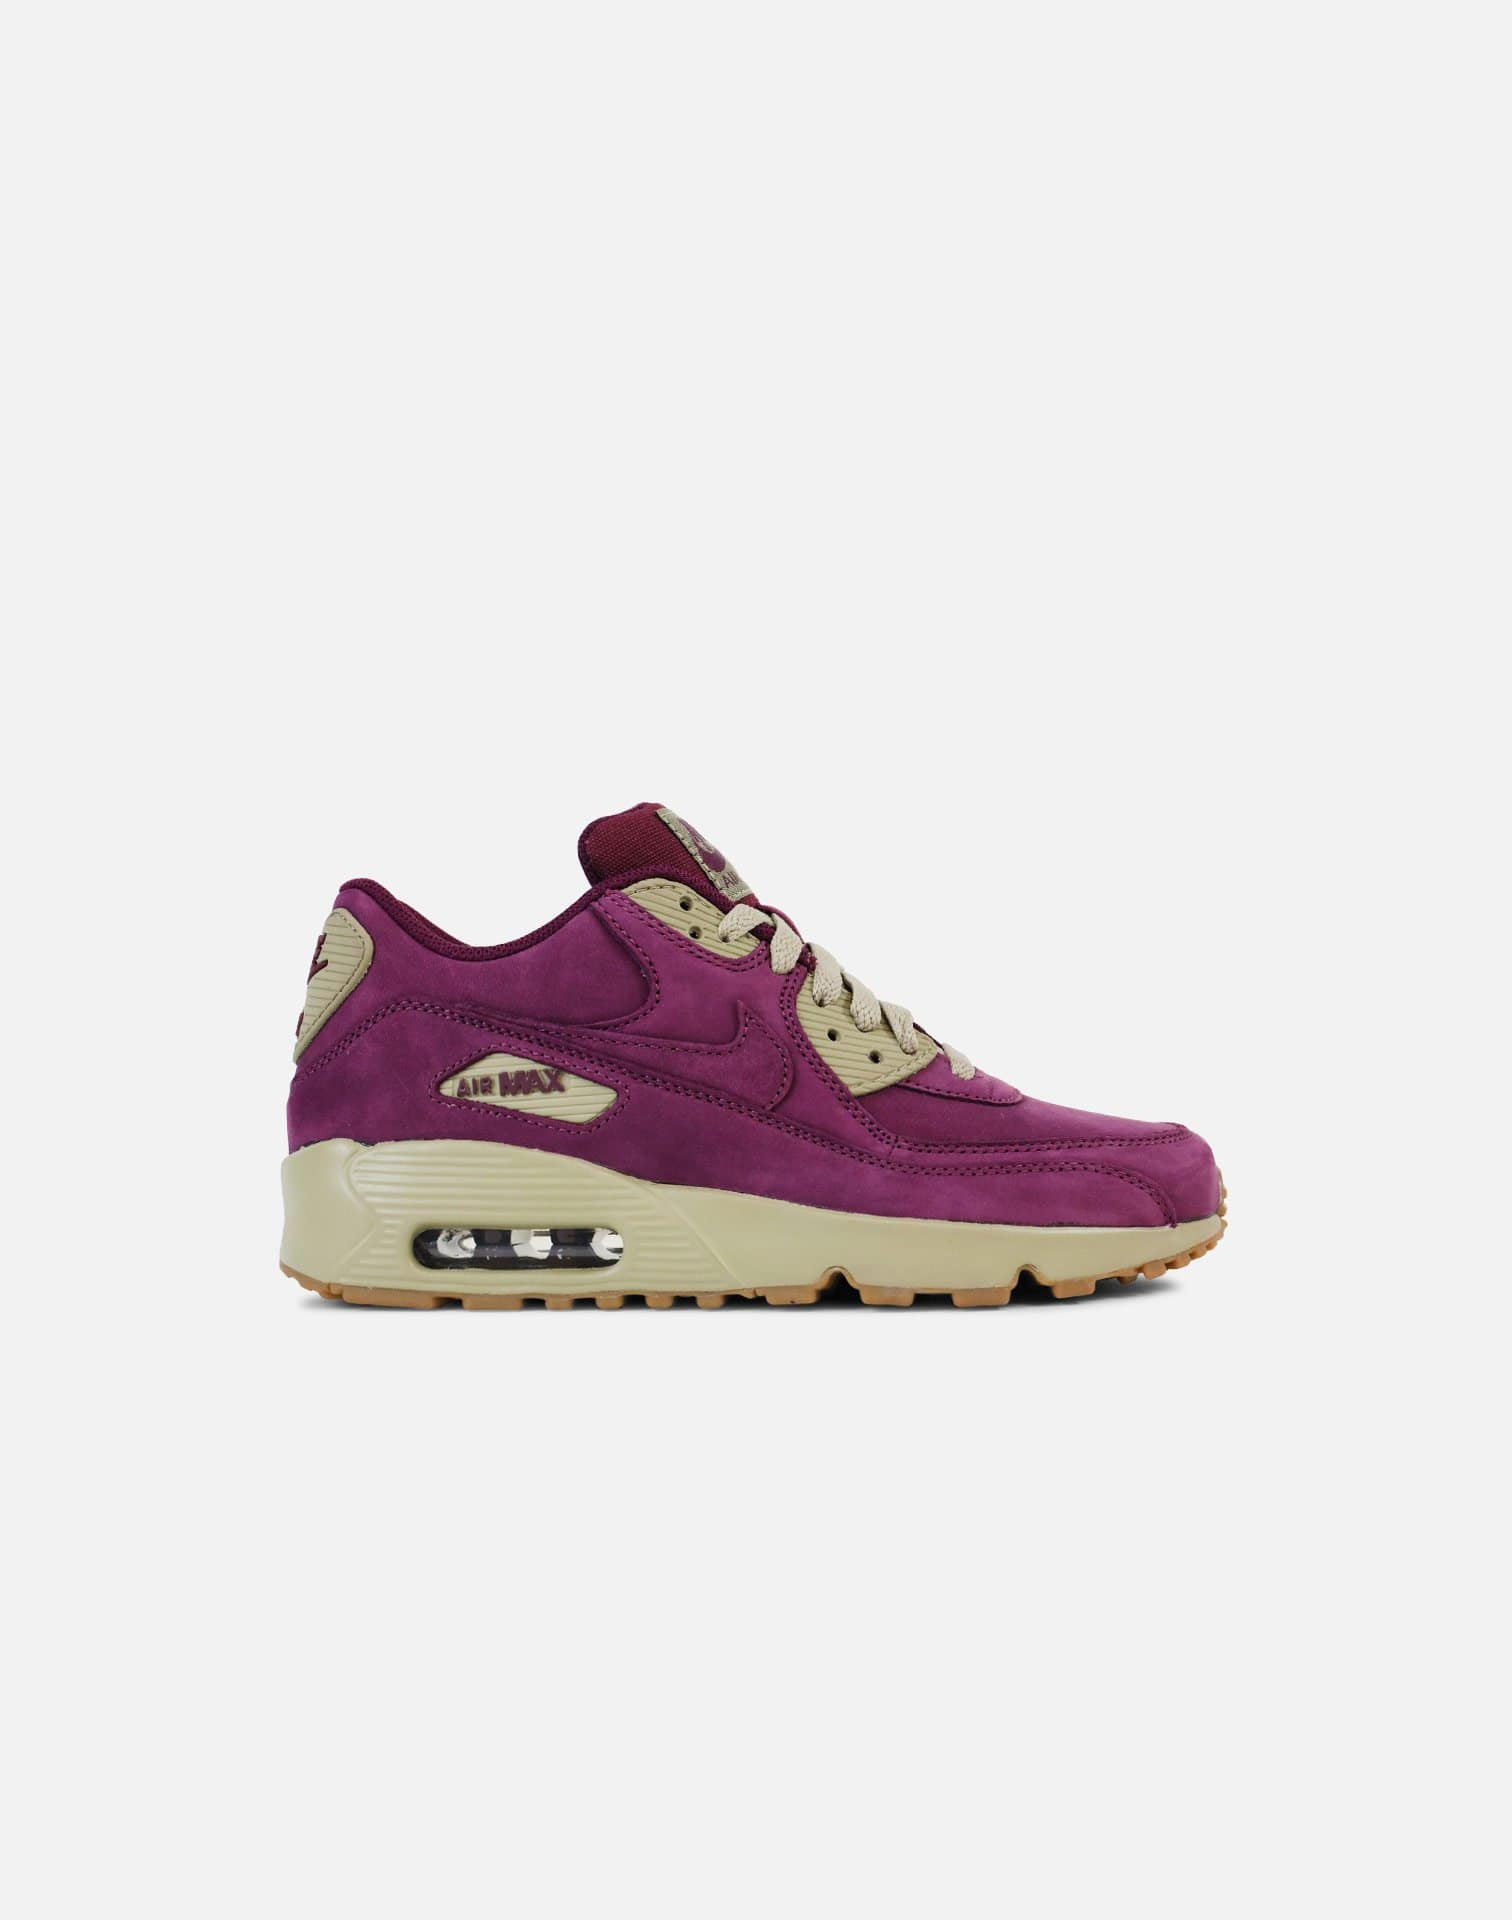 Nike Air Max 90 Winter Premium Grade-School (Bordeaux/Bordeaux-Bamboo-Gum Light Brown)